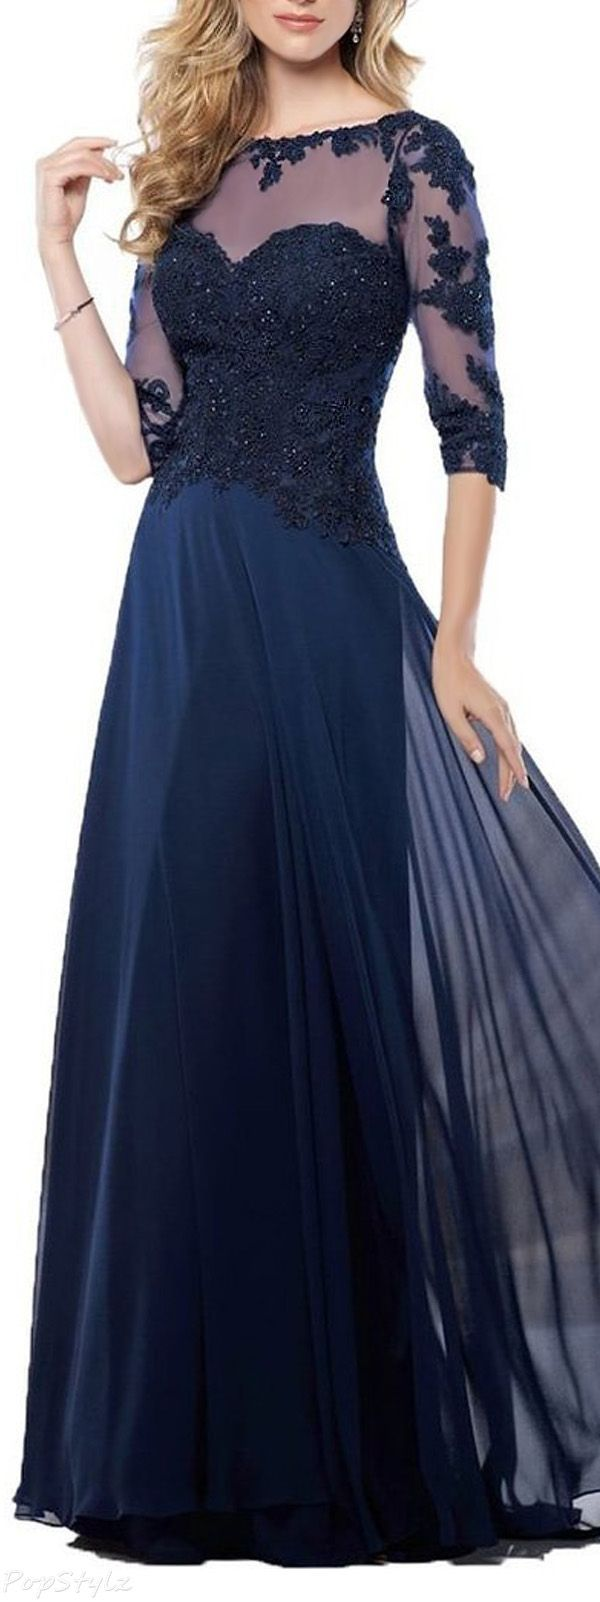 Lovely long lace evening gown clothes for gals pinterest lace